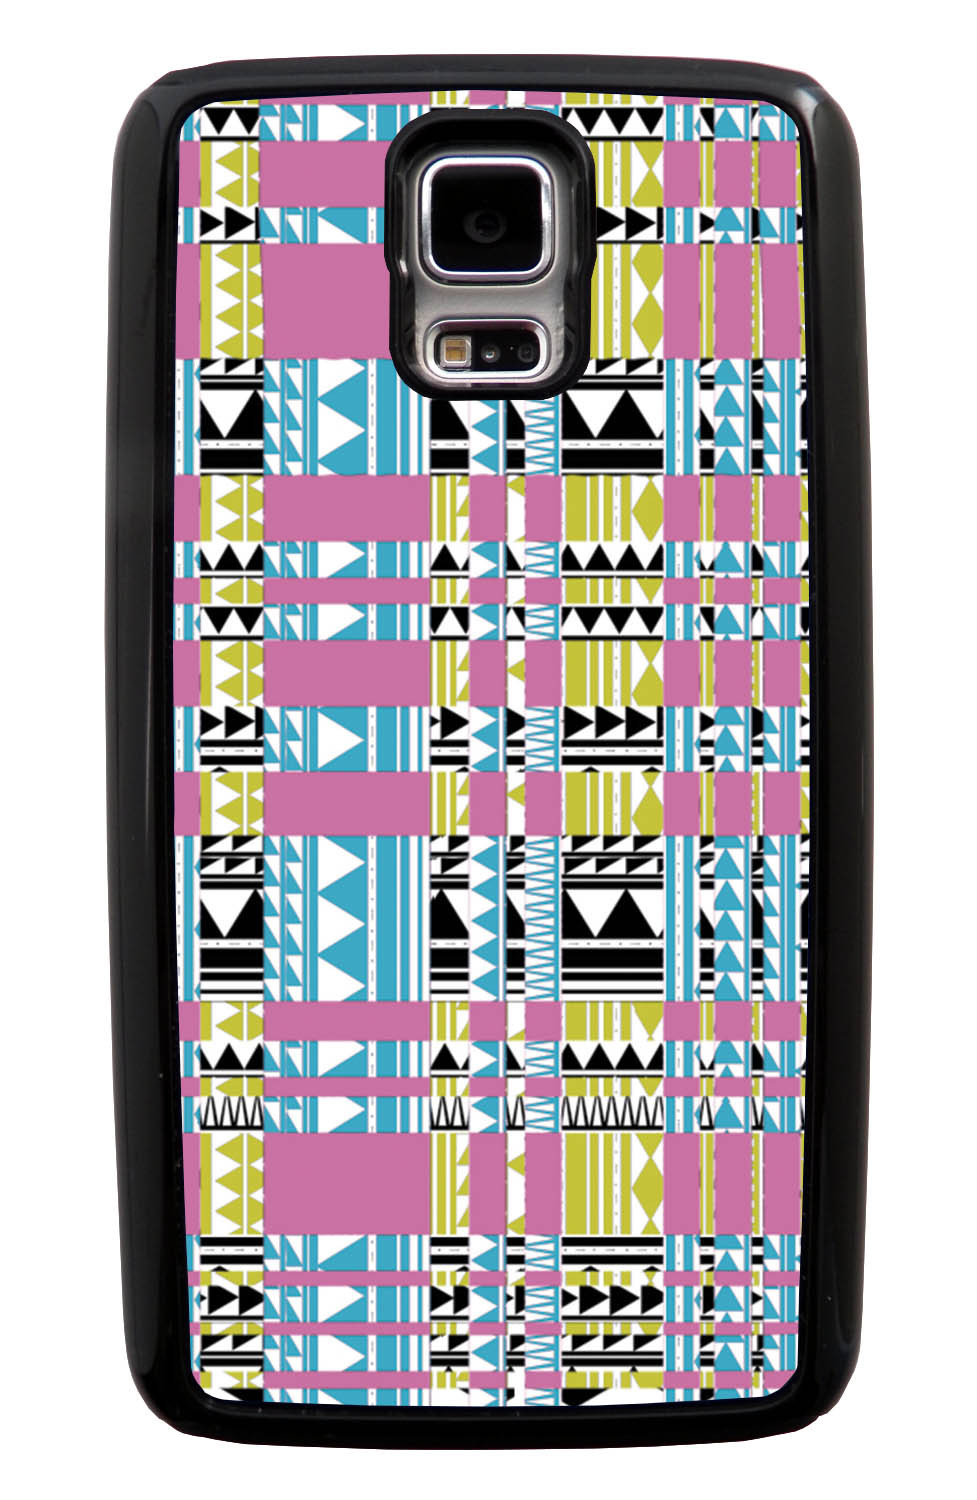 Samsung Galaxy S5 / SV Aztec Case - Glitched Inverse - Geometric - Black Tough Hybrid Case